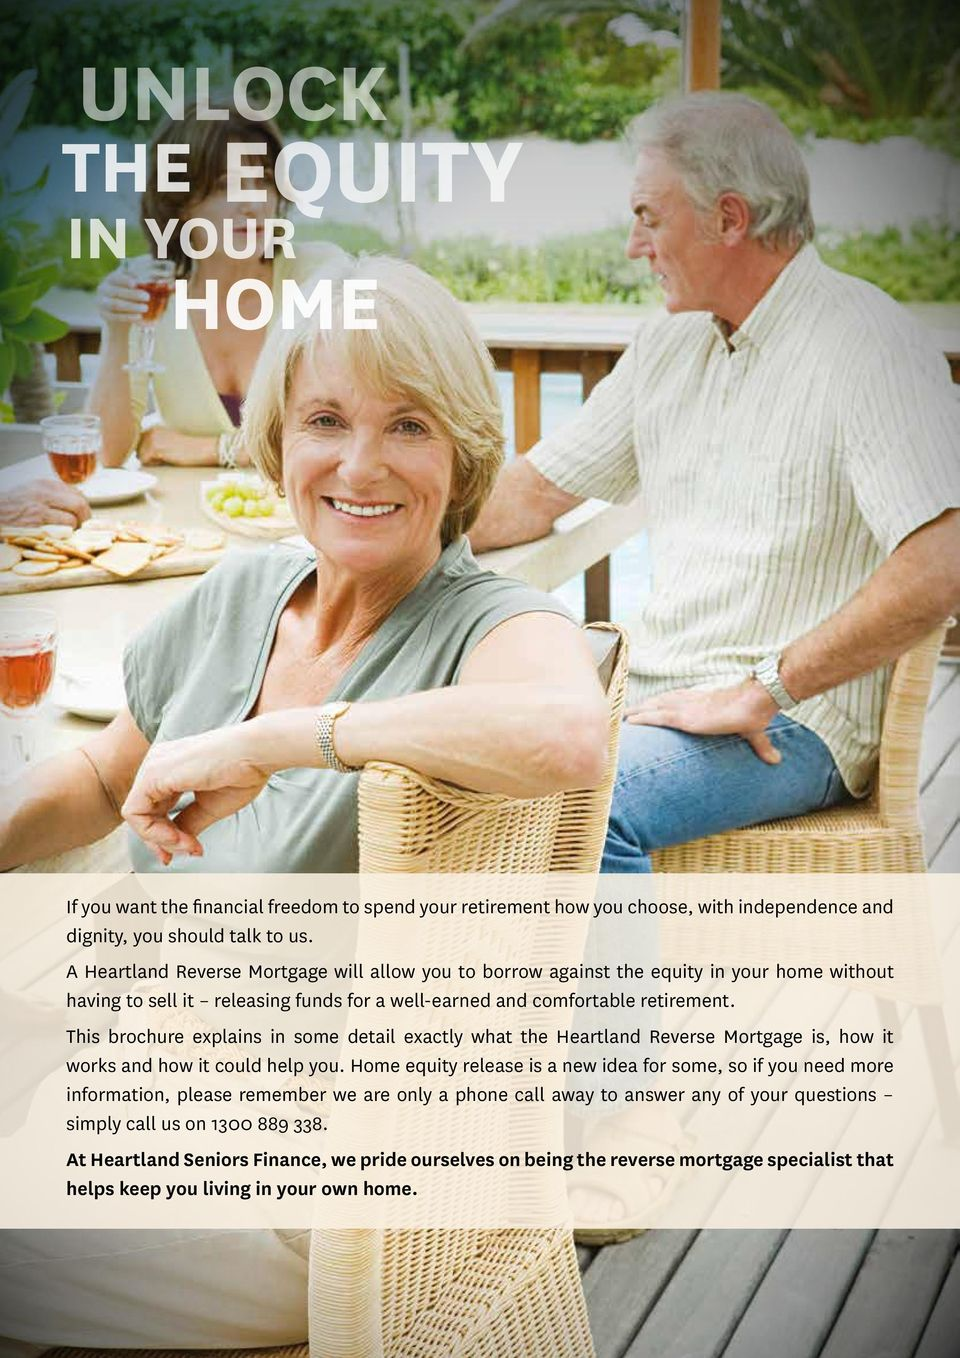 This brochure explains in some detail exactly what the Heartland Reverse Mortgage is, how it works and how it could help you.